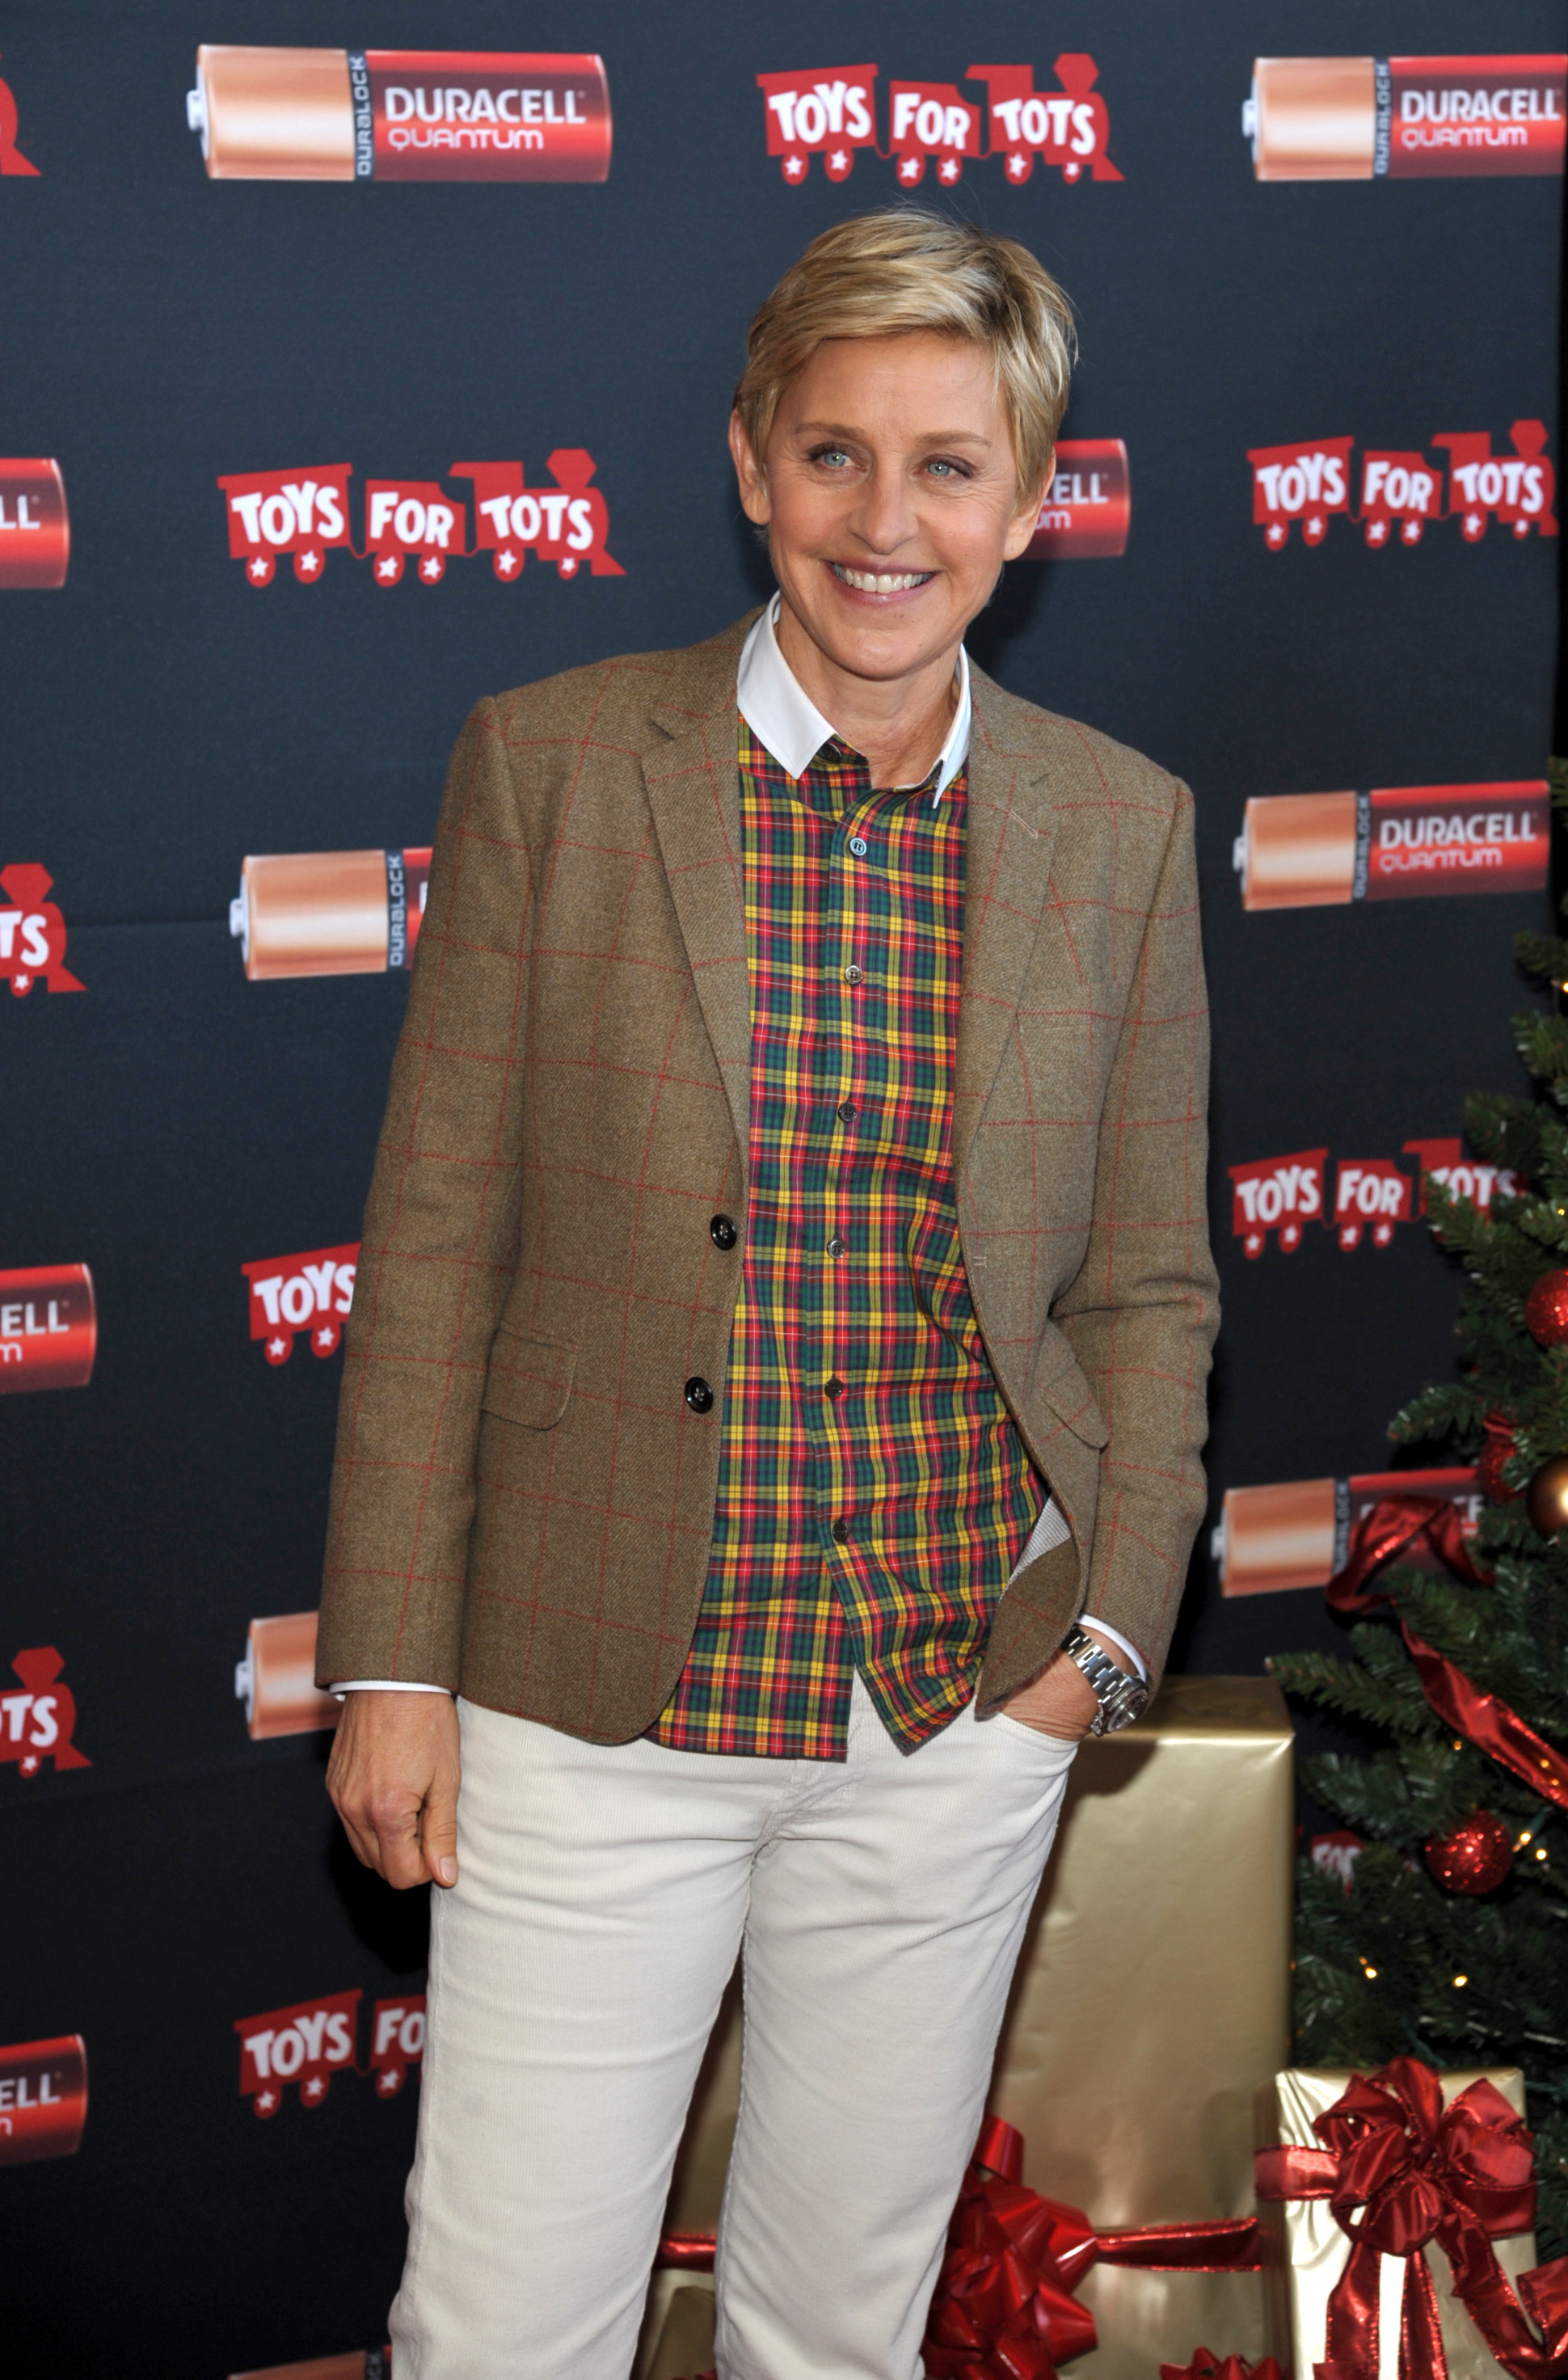 """Ellen DeGeneres launches Duracell """"Power a Smile"""" Program that will donate up to 1 million batteries to Toys for Tots, triggered by the purchase of eligible Duracell battery packs, on Friday, Nov. 22, 2013 in Los Angeles. (Photo by John Shearer/Invision for Duracell/AP Images)"""